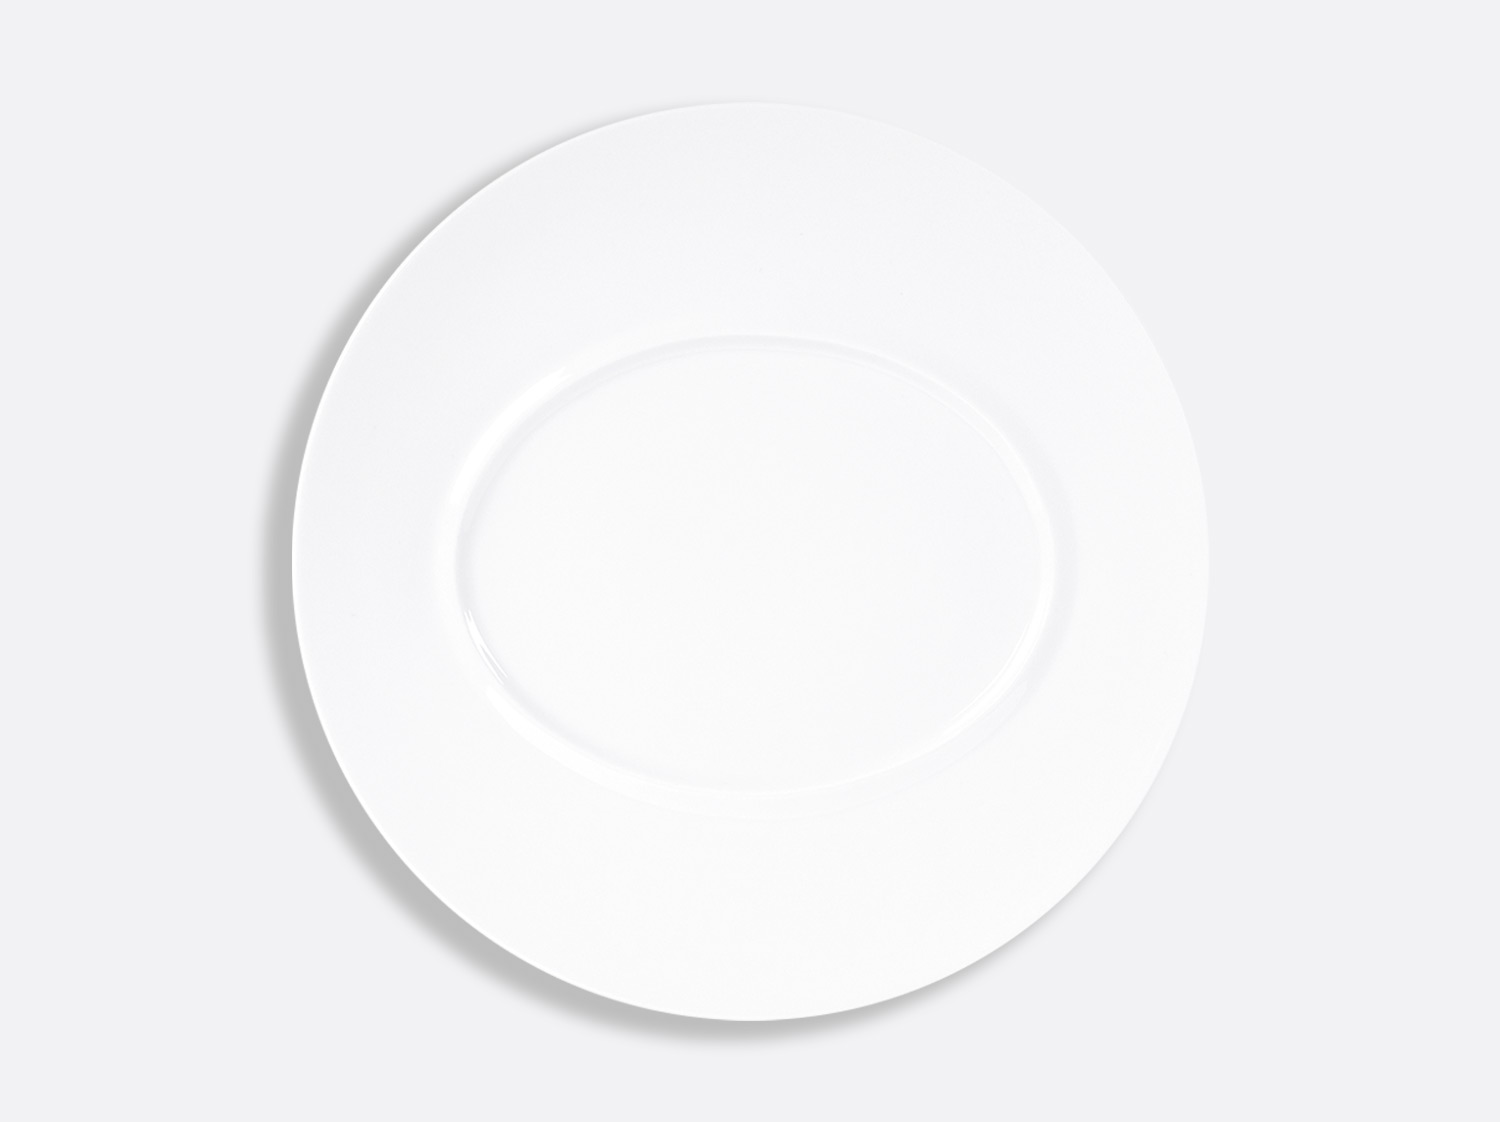 Assiette plate Shogun 29,5 cm en porcelaine de la collection FUSION BLANC Bernardaud